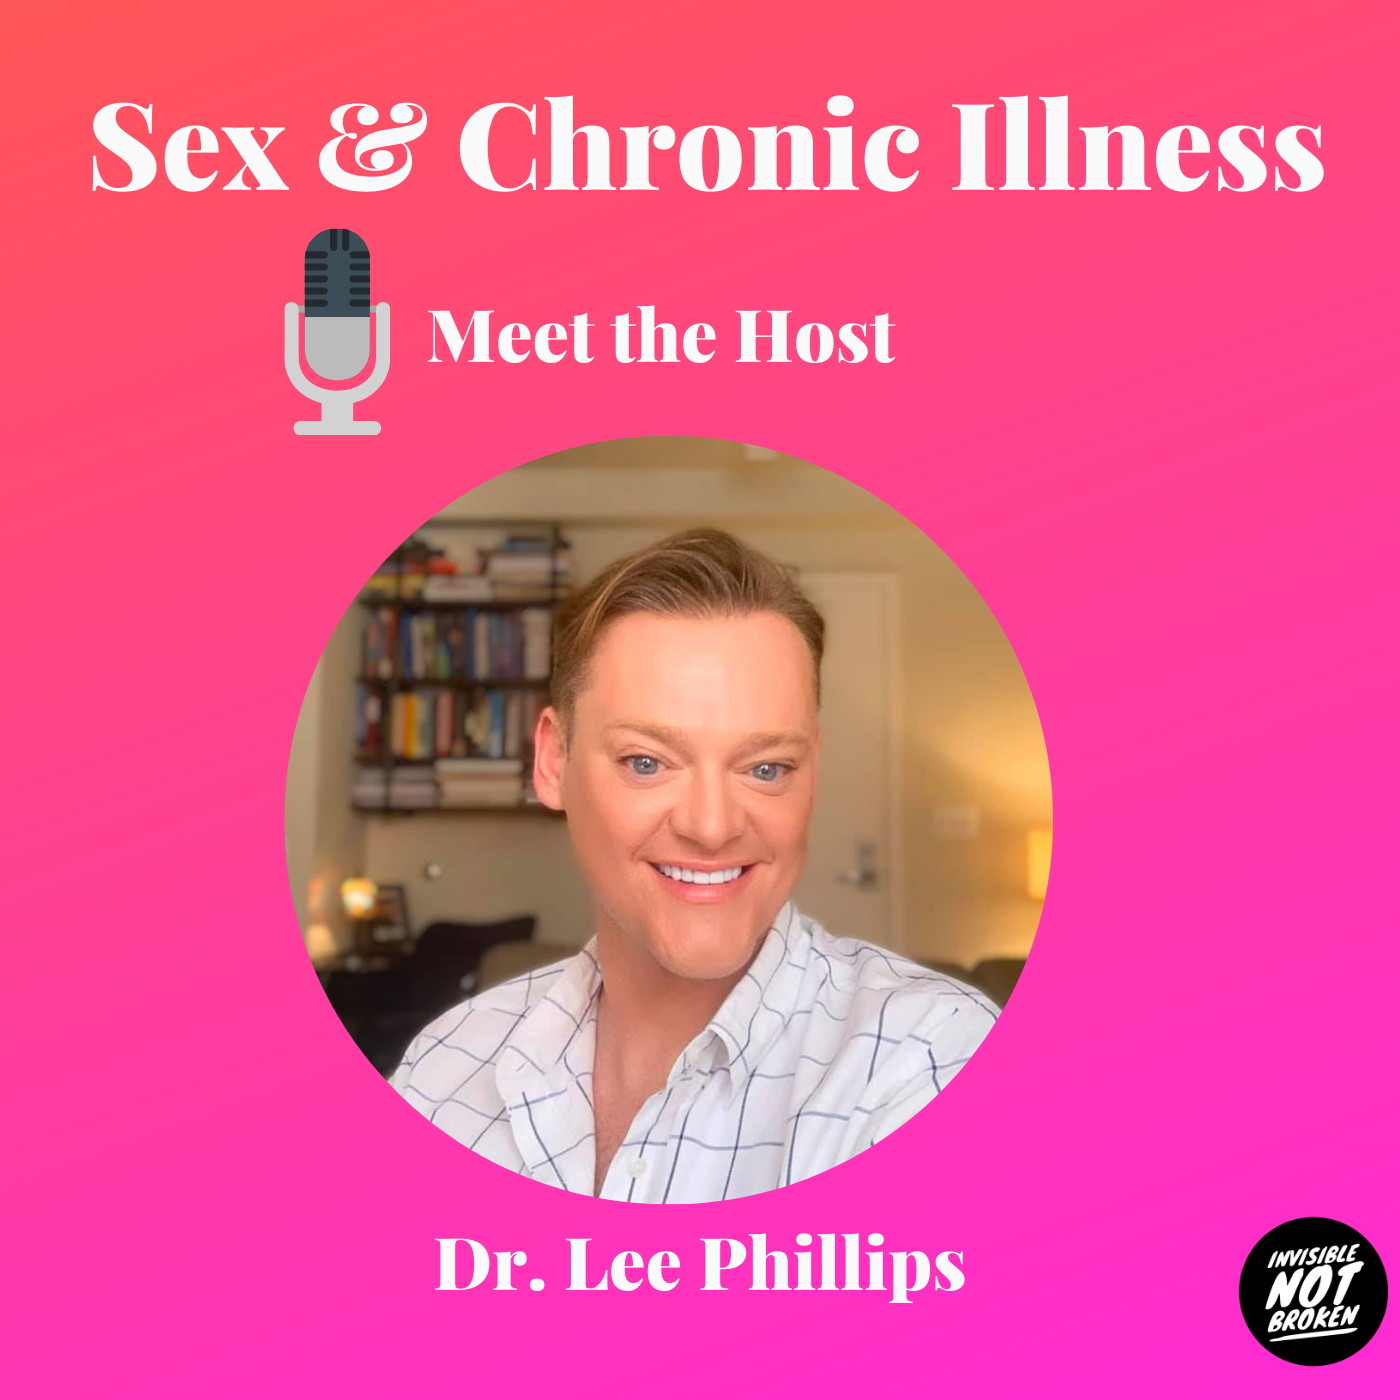 Sex and Chronic Illness - Episode 1: Meet Dr. Lee Phillips!